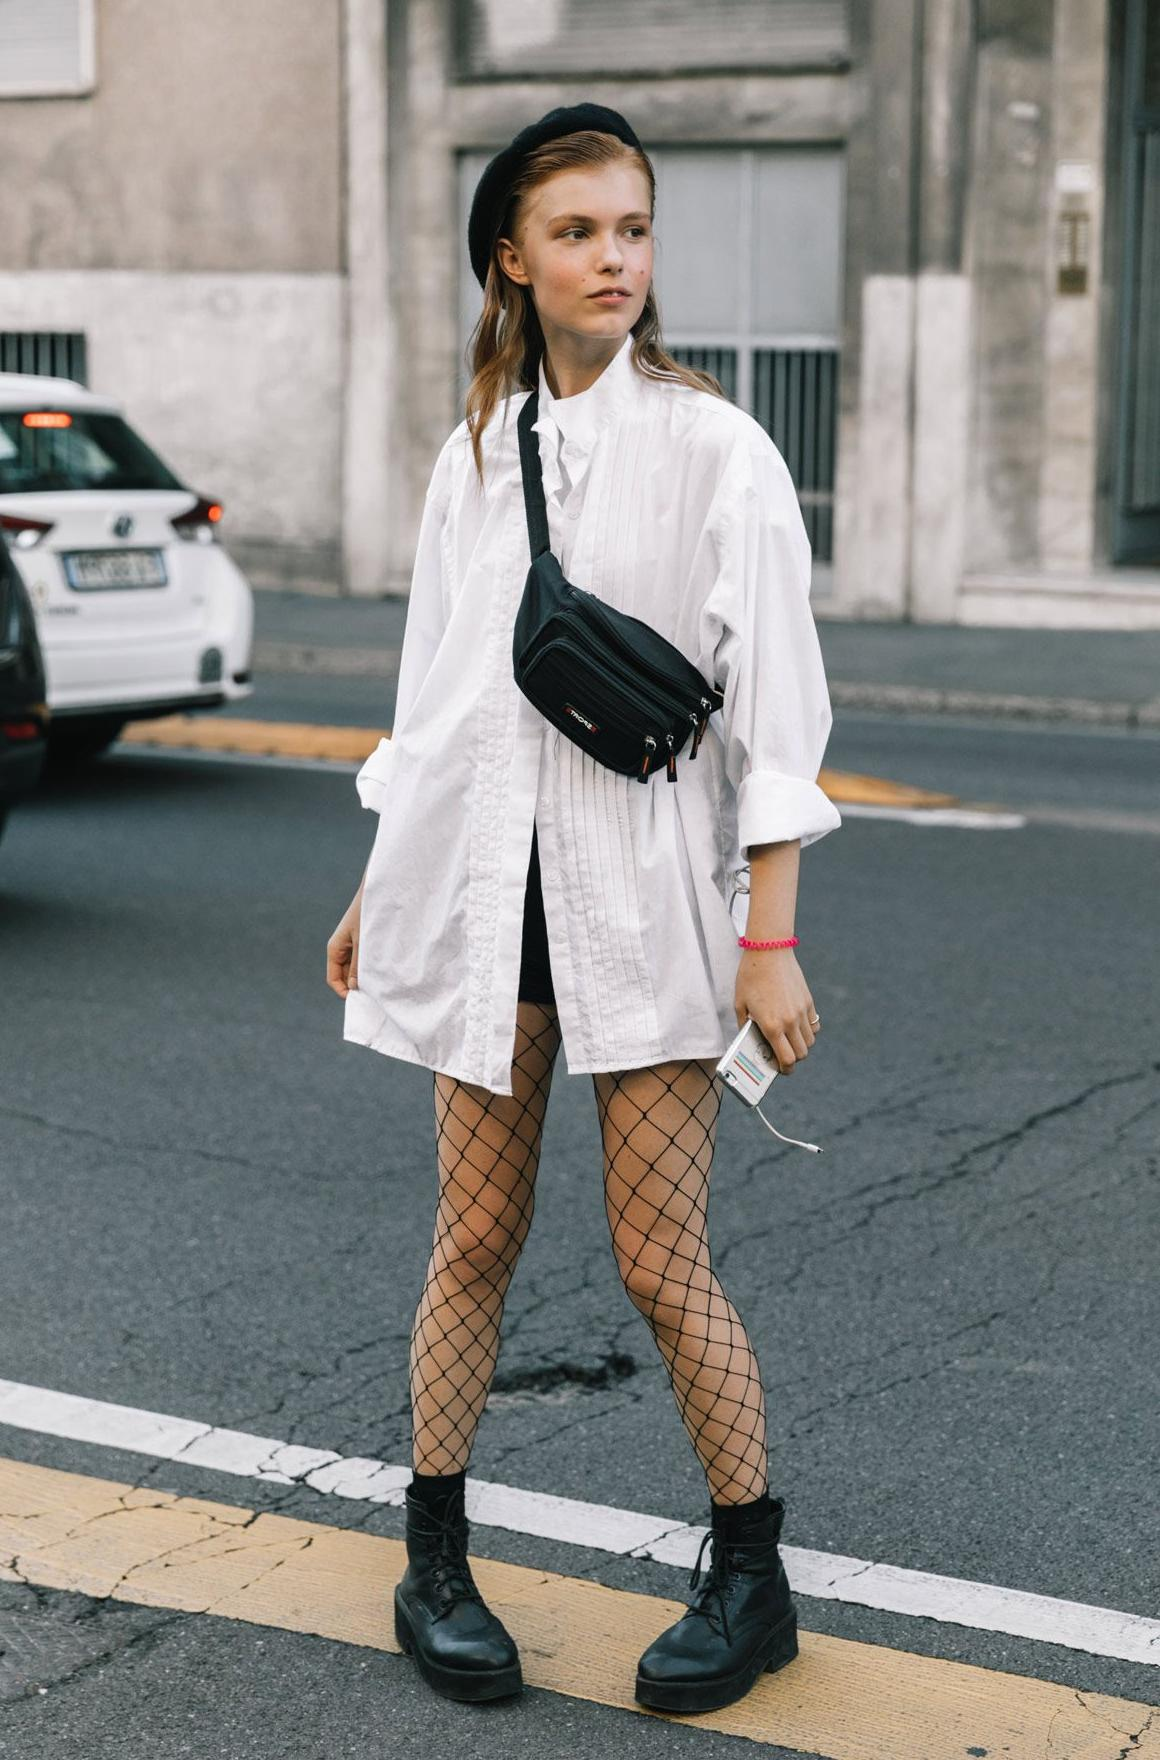 Best Casual Summer Dresses You Can Wear Right Now 2022